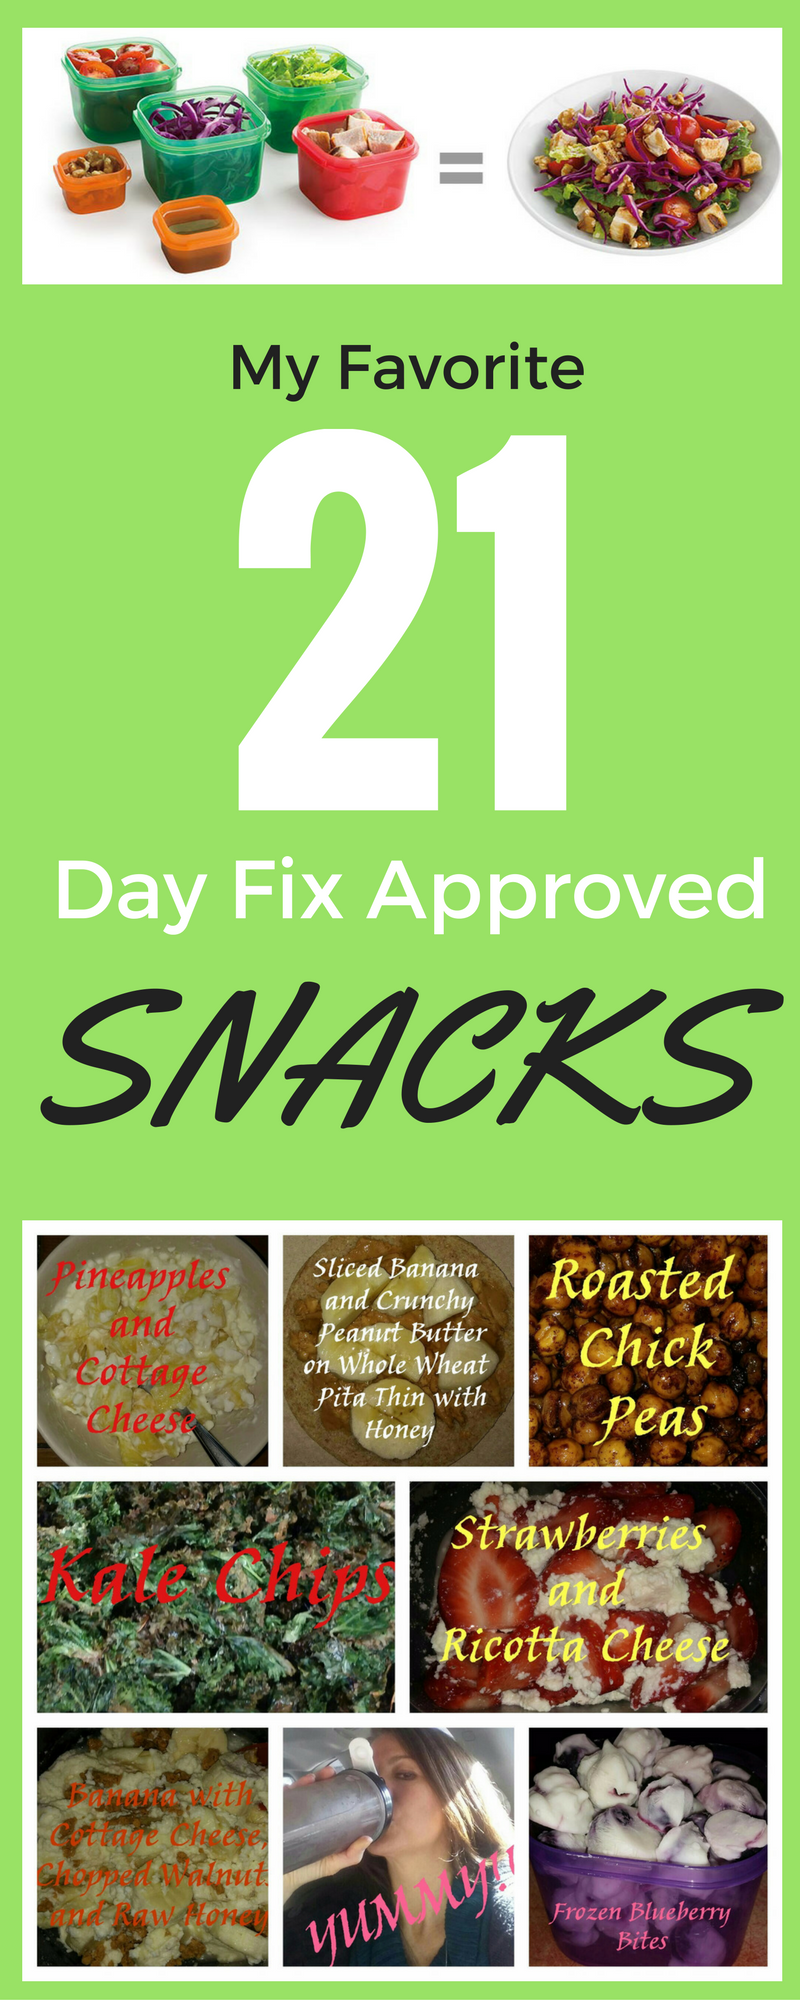 My Favorite 21 Day Fix Approved Snacks! Want to learn more ...